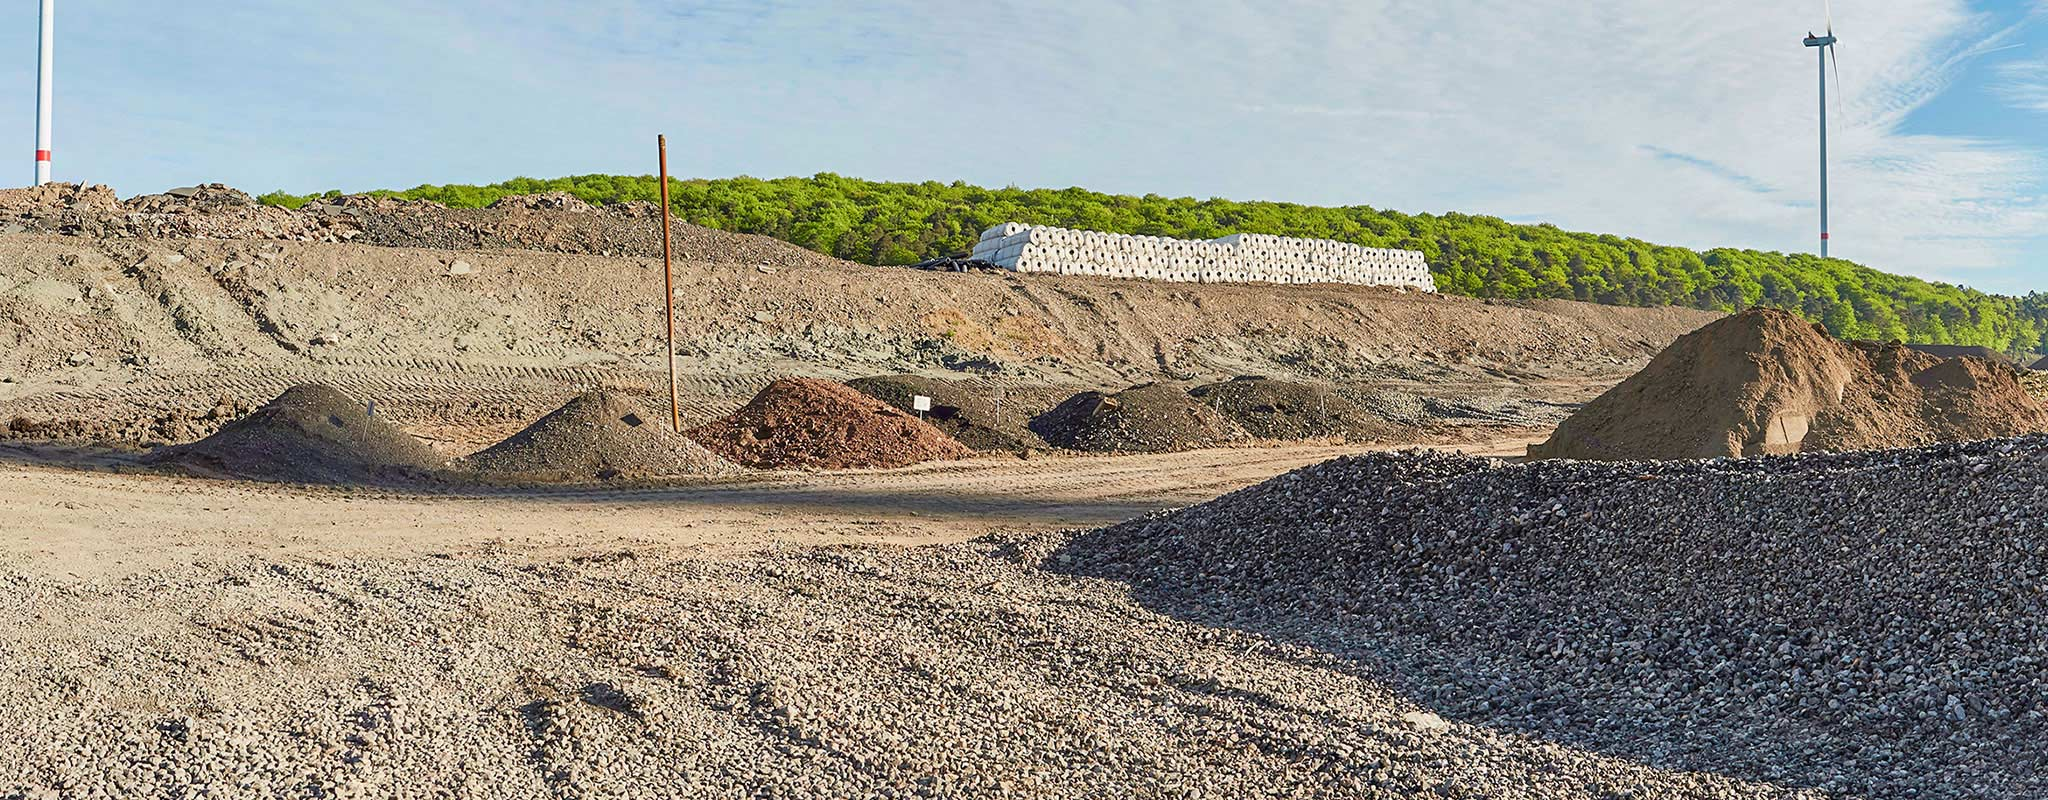 Landfill construction materials from mineral waste